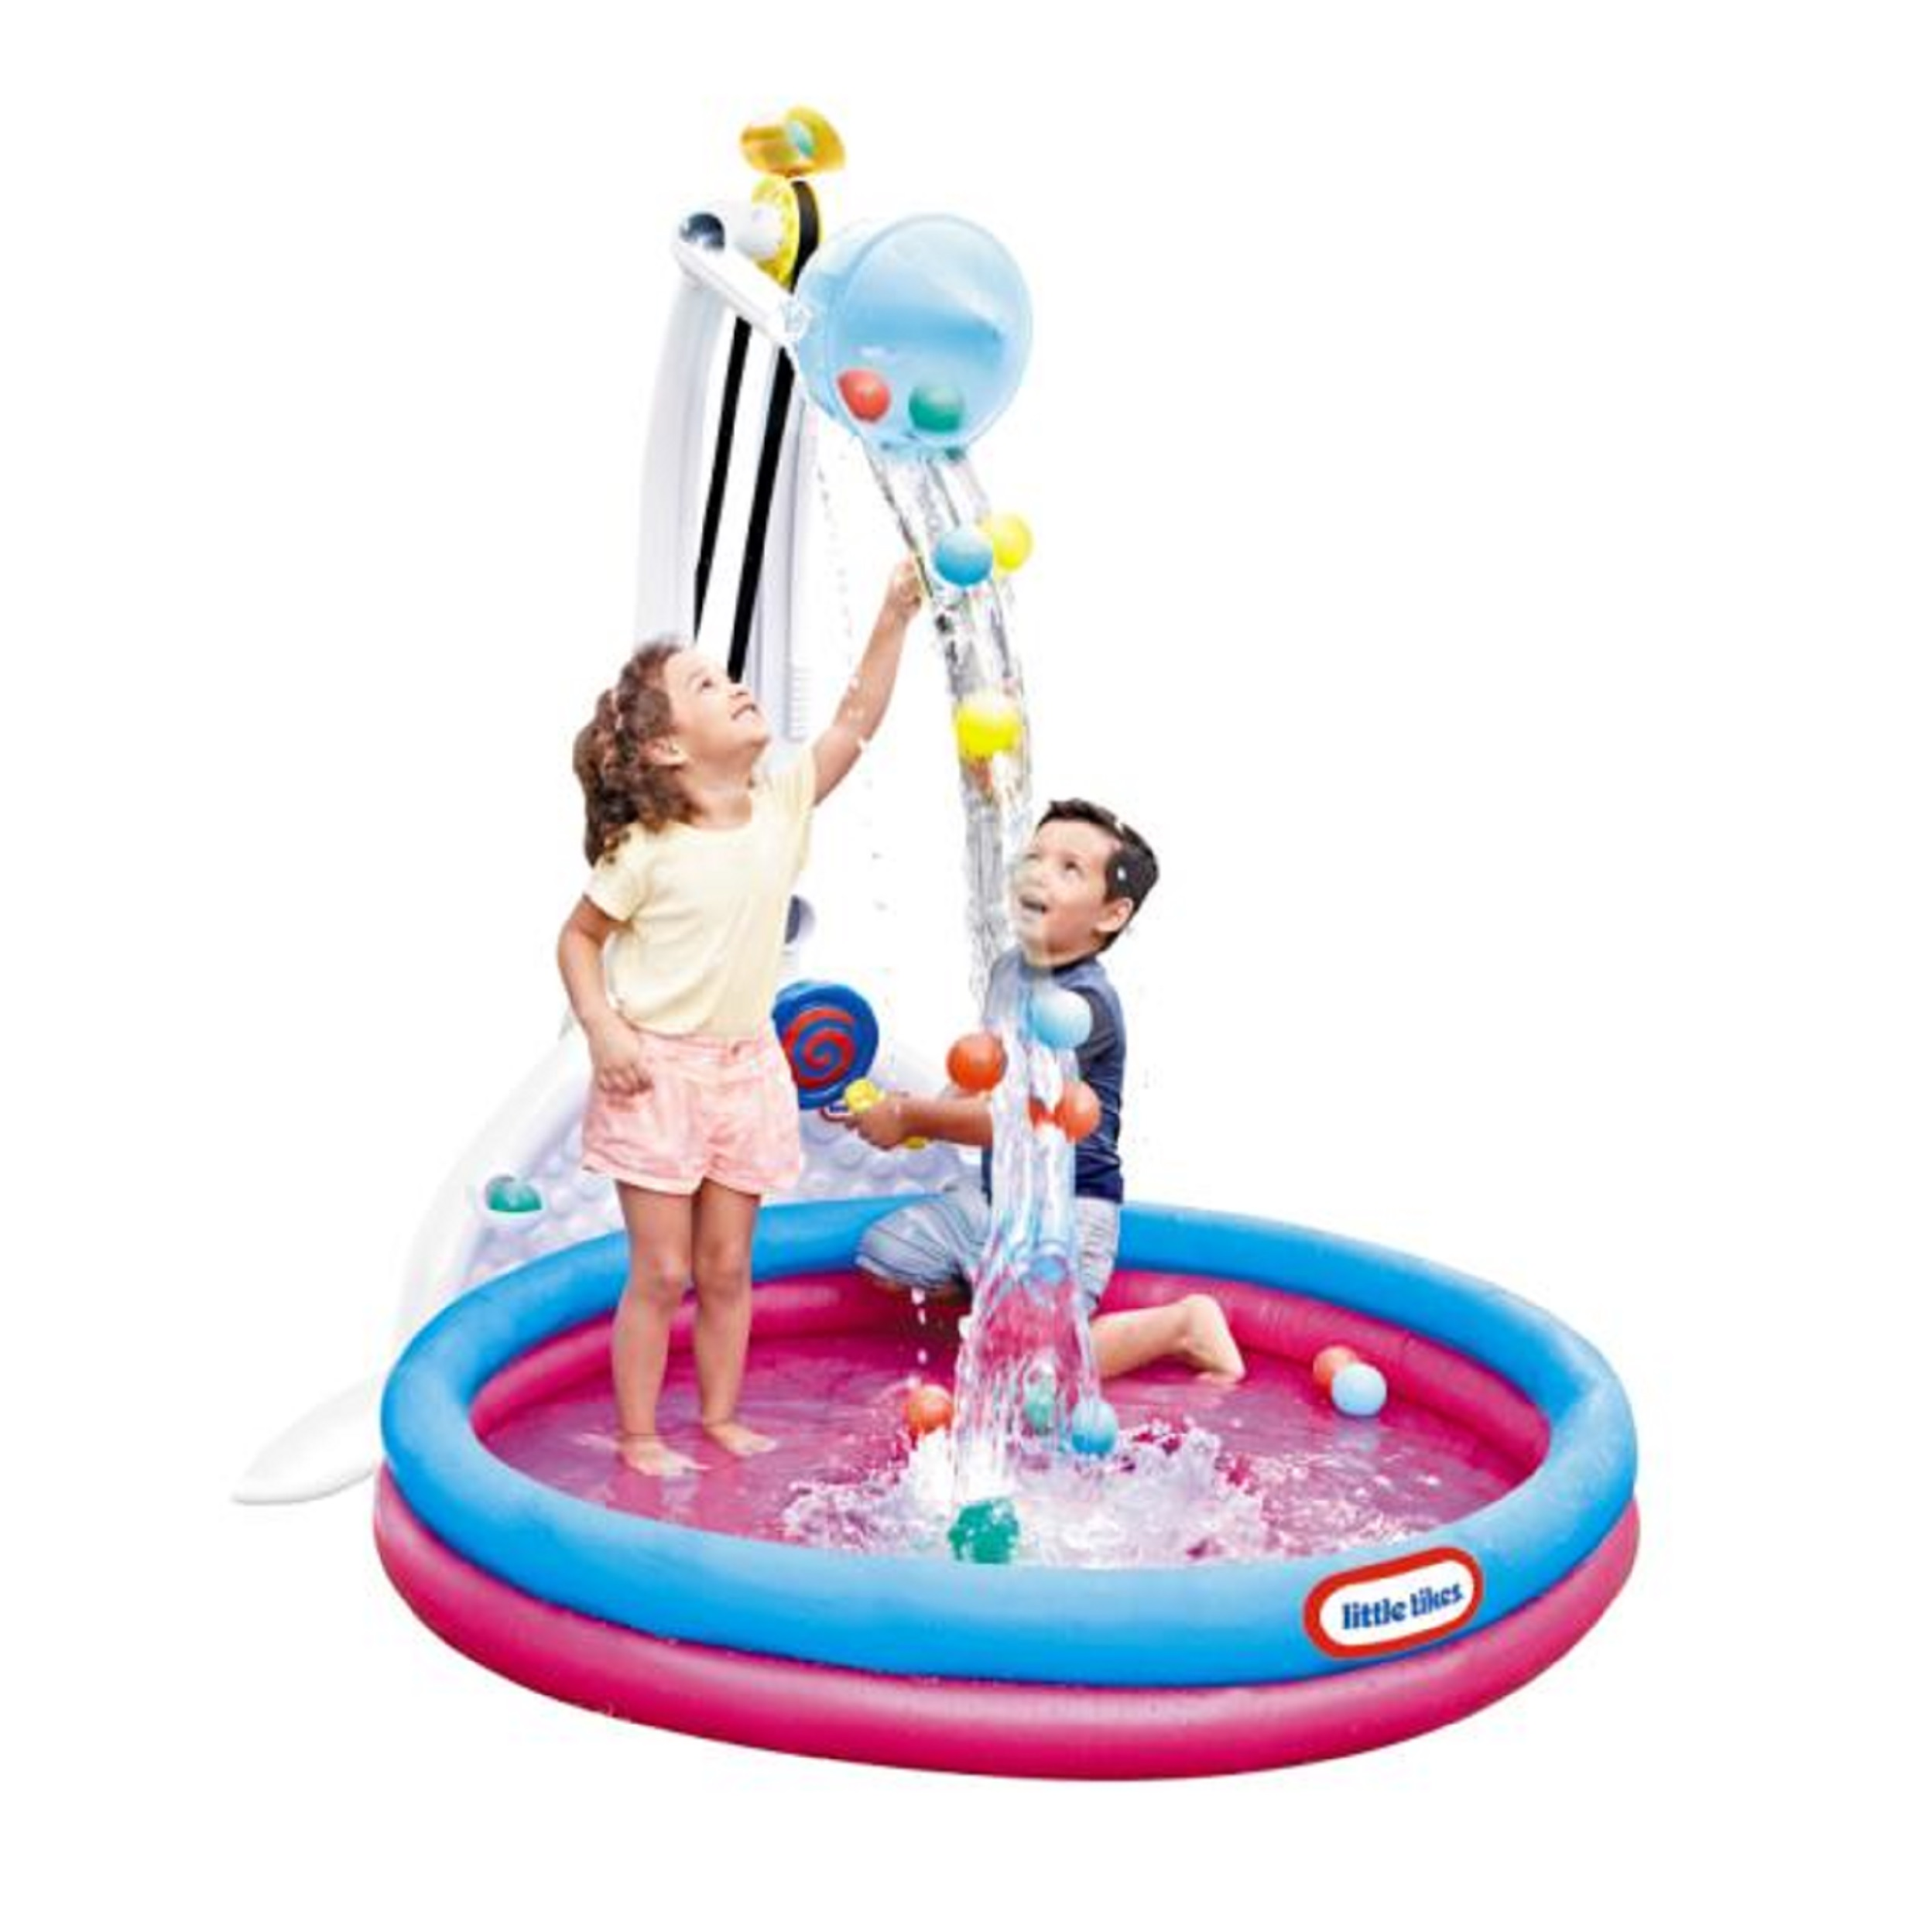 Little Tikes Fun Zone Drop Zone Kiddie Swimming Pool, Indoor/Outdoor